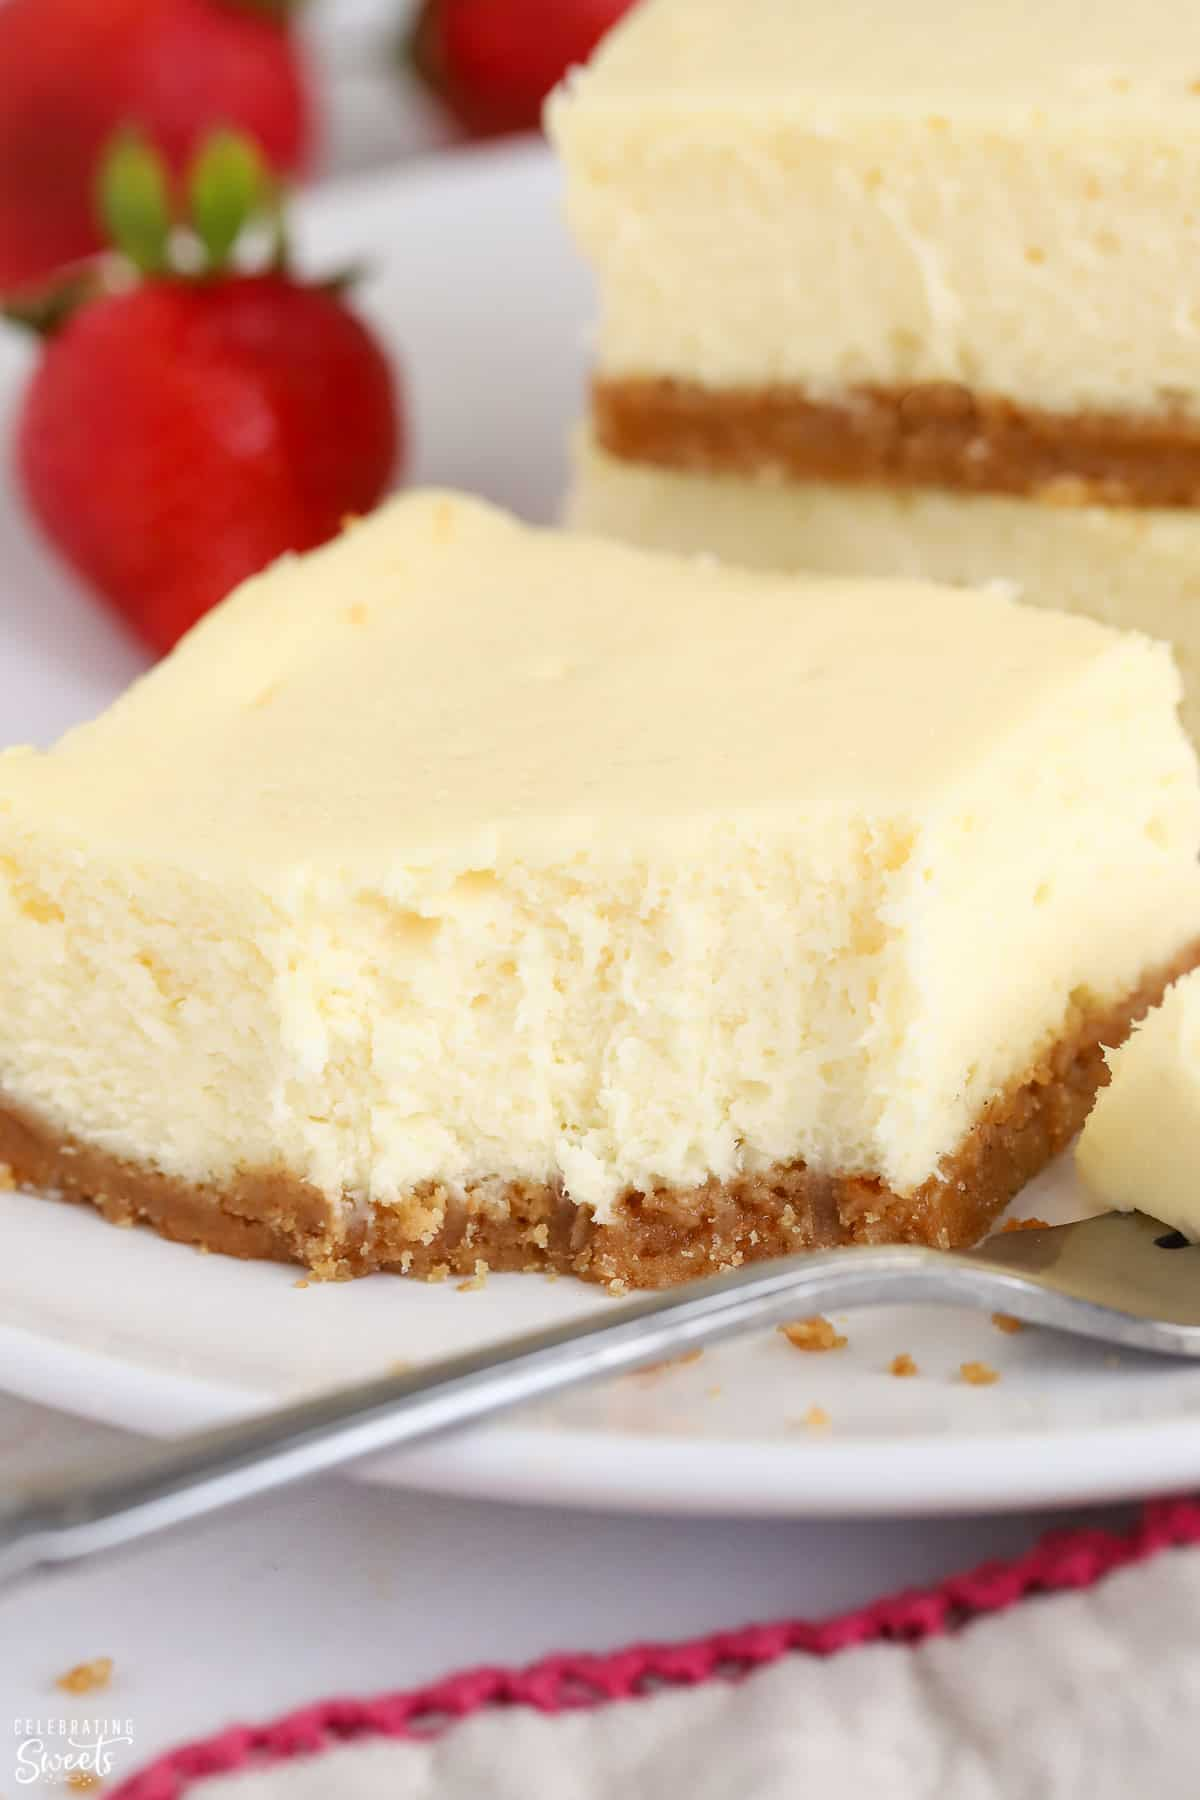 Cheesecake bar on a white plate with a fork